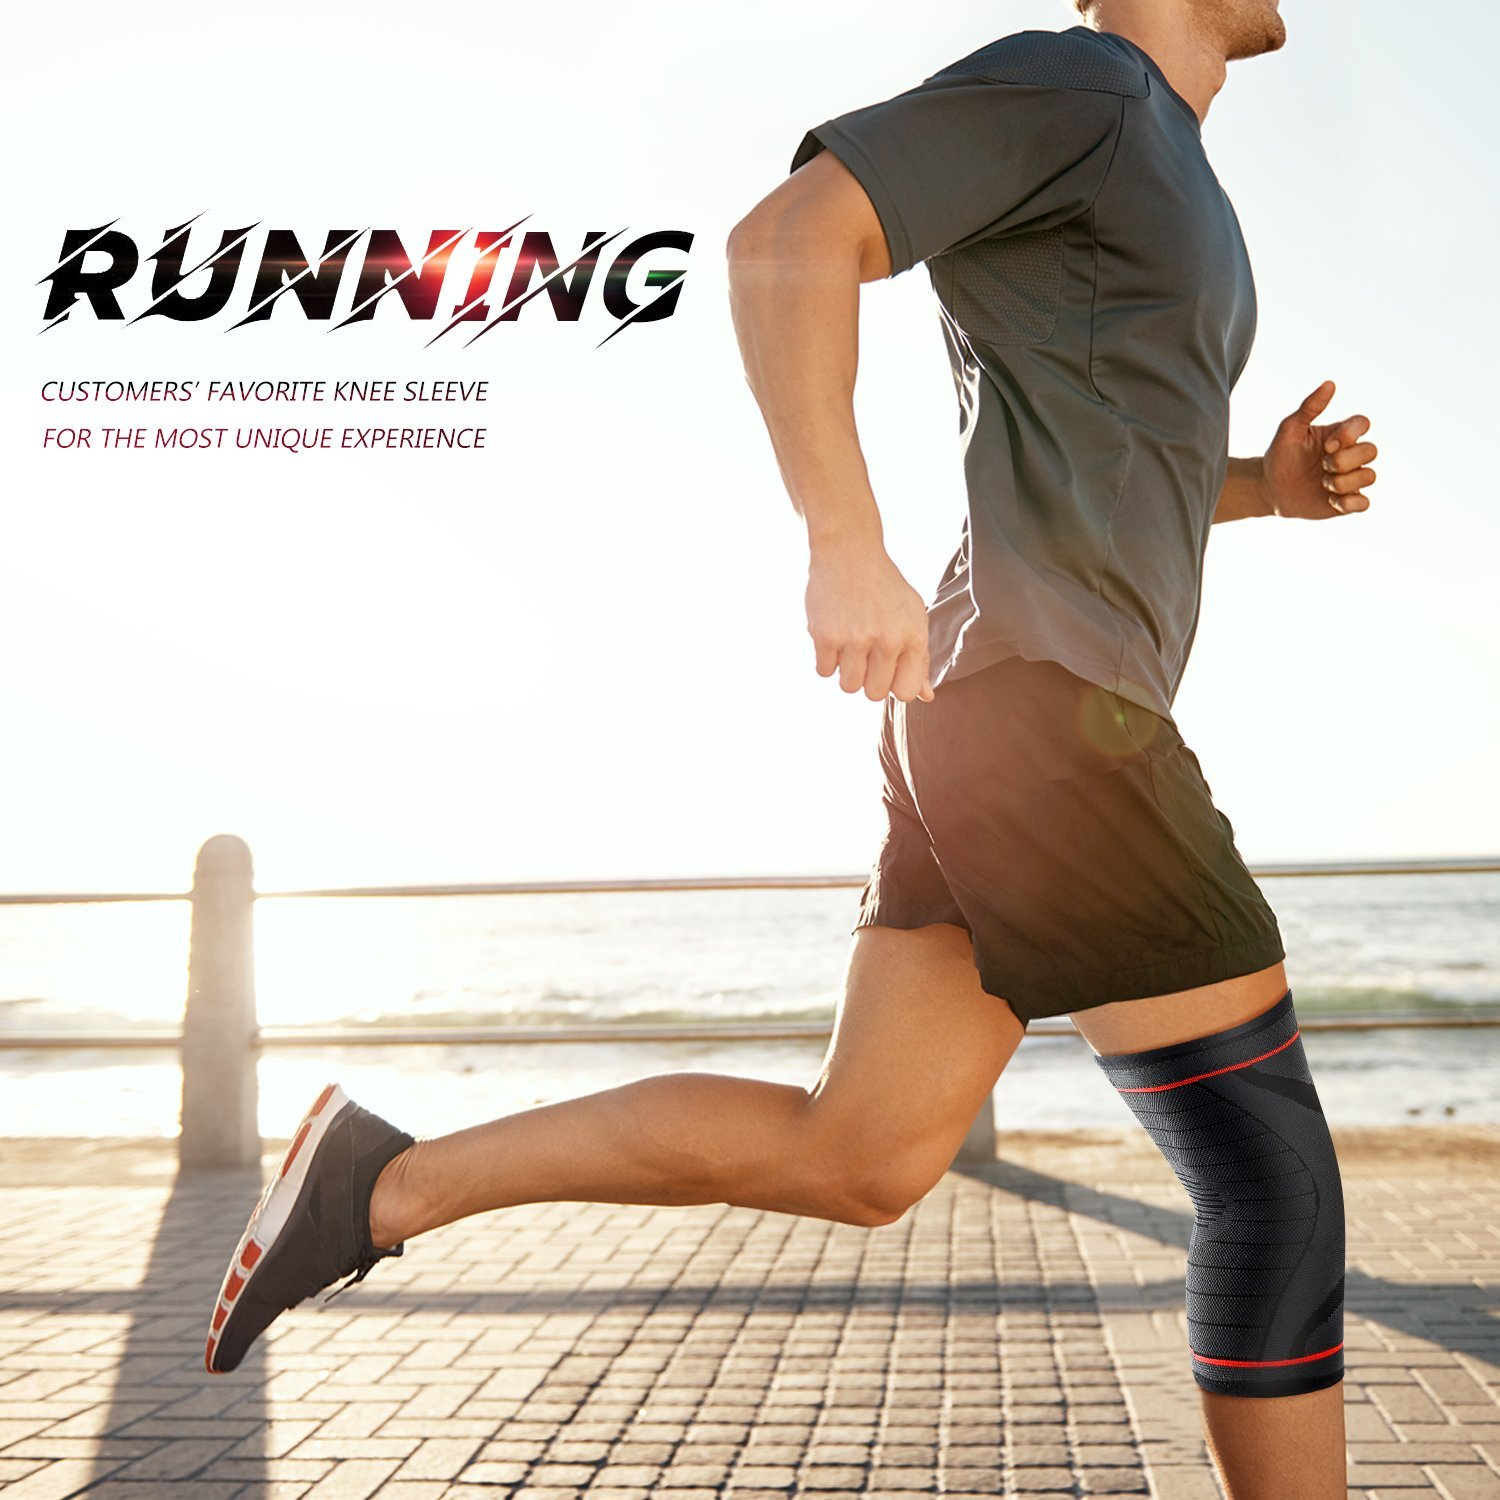 a42536b837 5 Best Knee Brace for Running Reviews 2019 In depth Guide